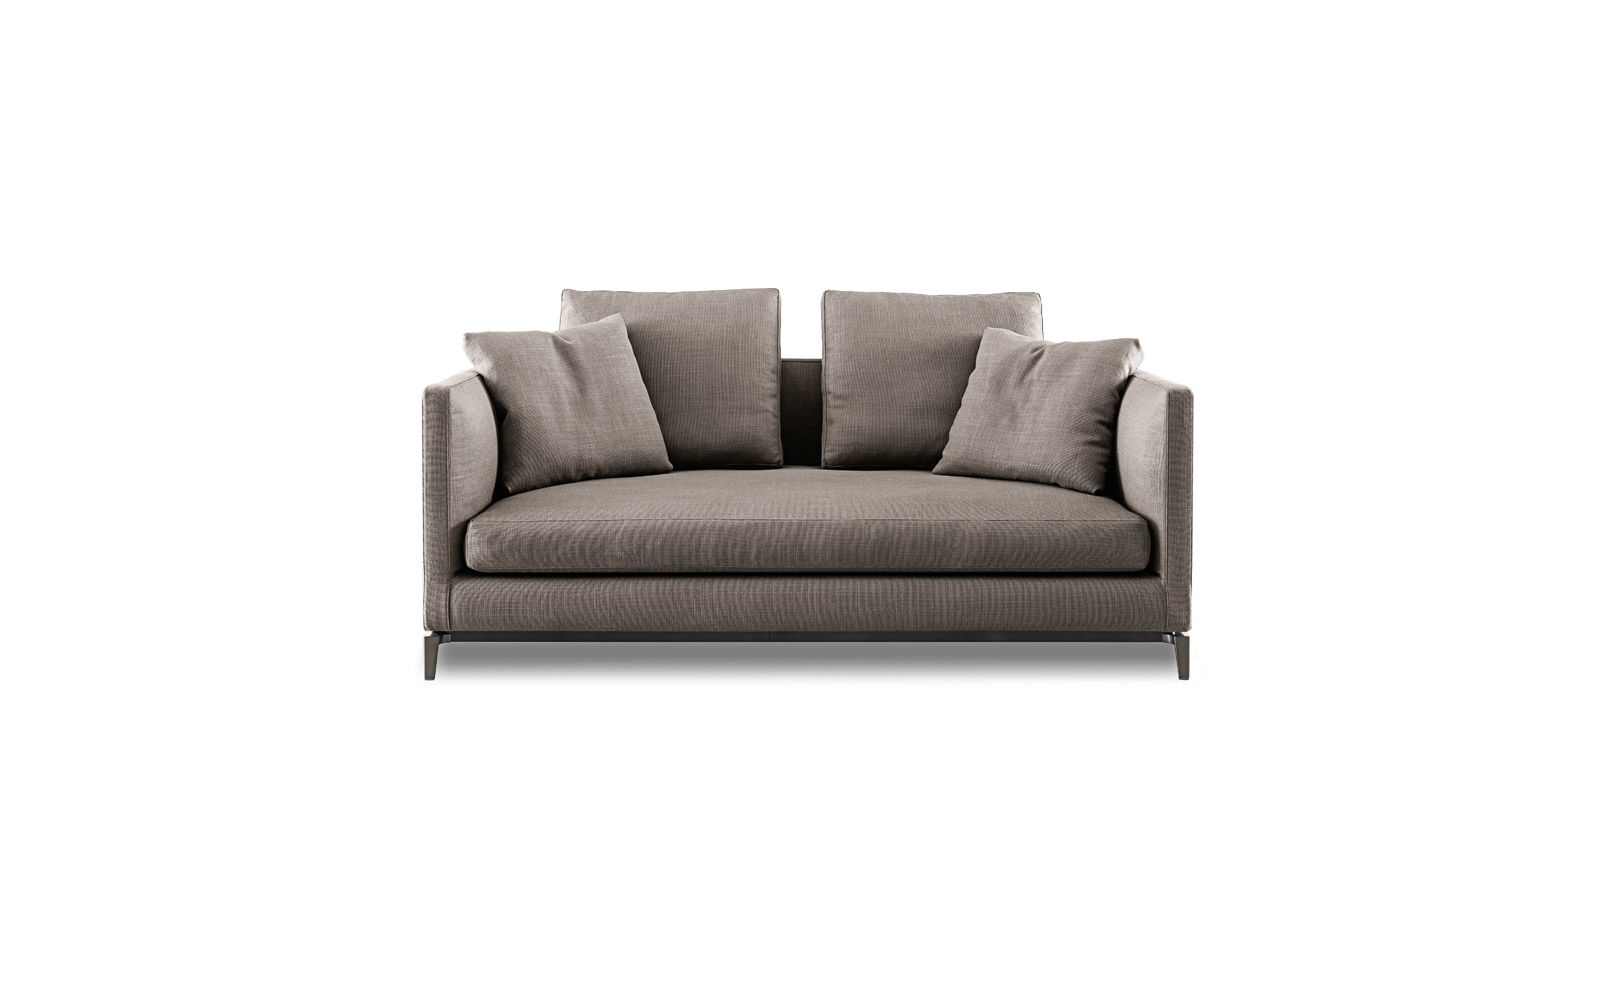 The Reduced Depth Of This Sofa Allows It To Fit Easily In Residential Settings Limited Scale As Well Hospitality Environments